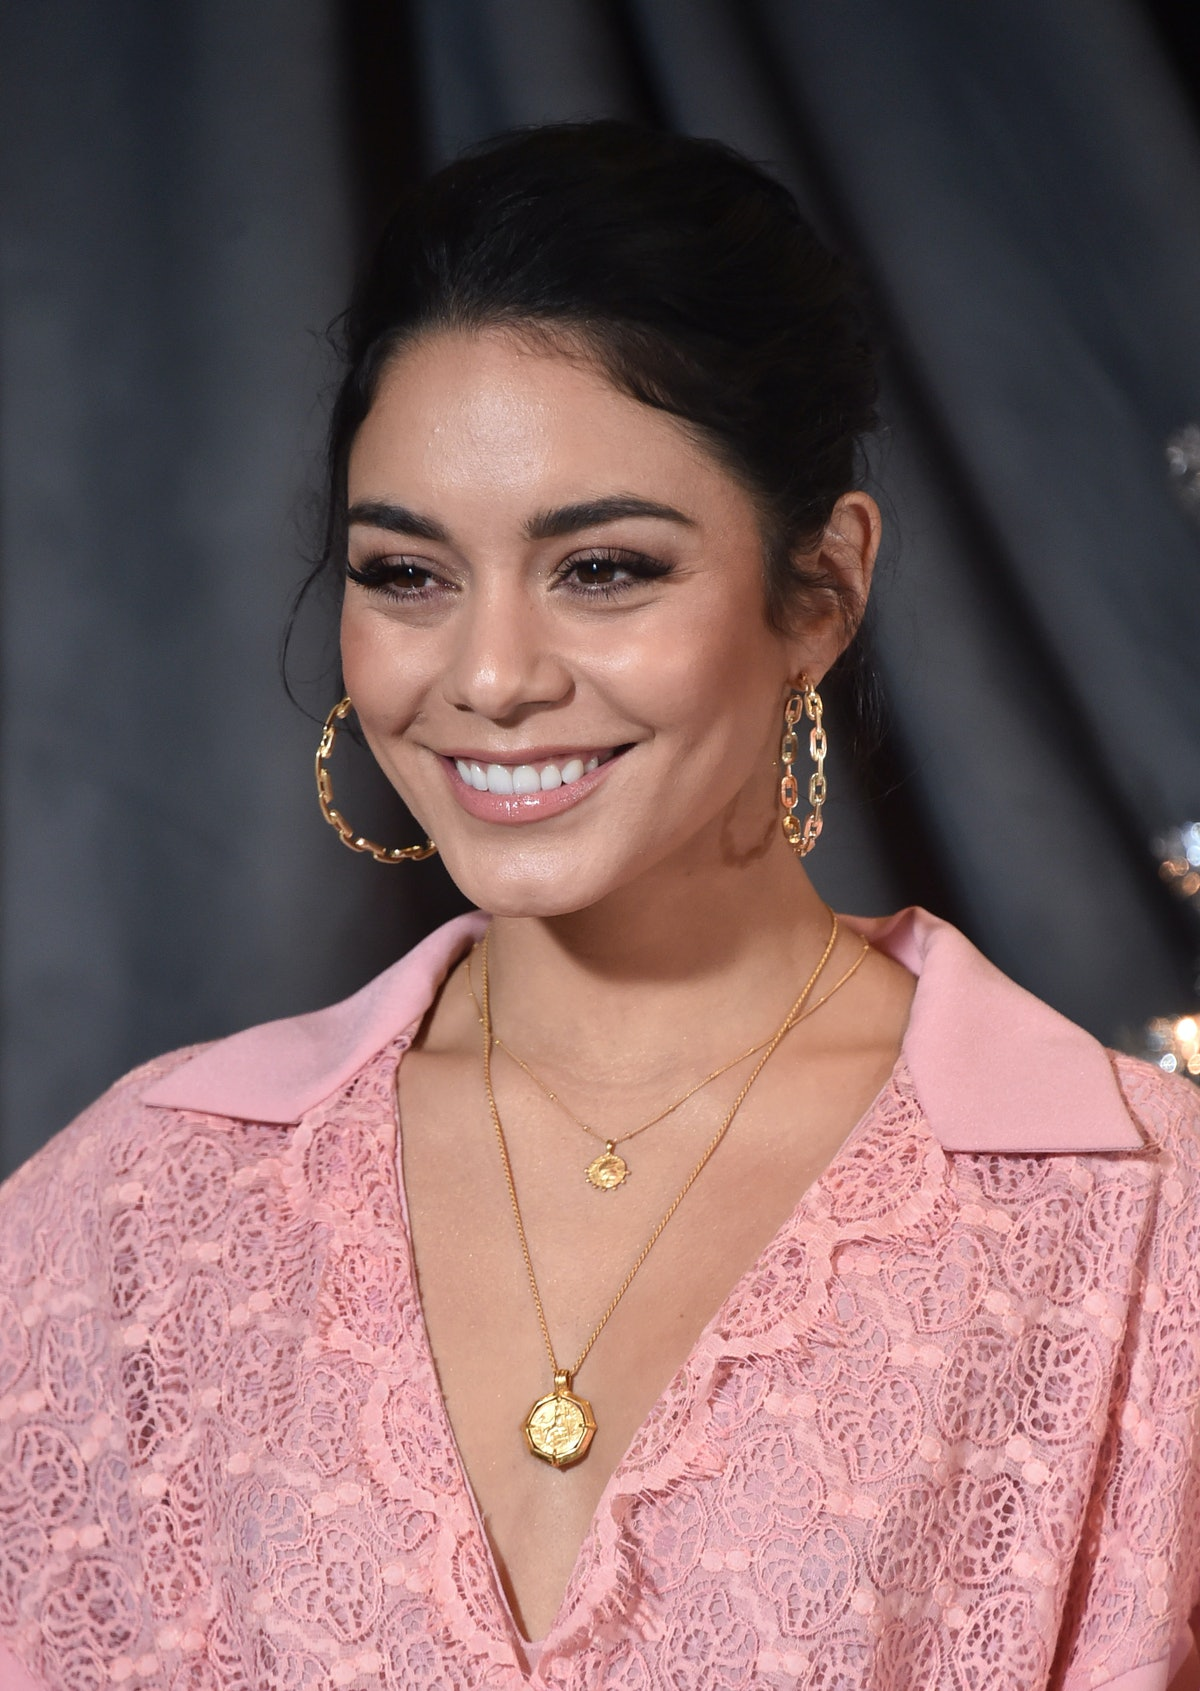 Vanessa Hudgens' 'The Knight Before Christmas' Movie Sounds Like A Fantasy Come True